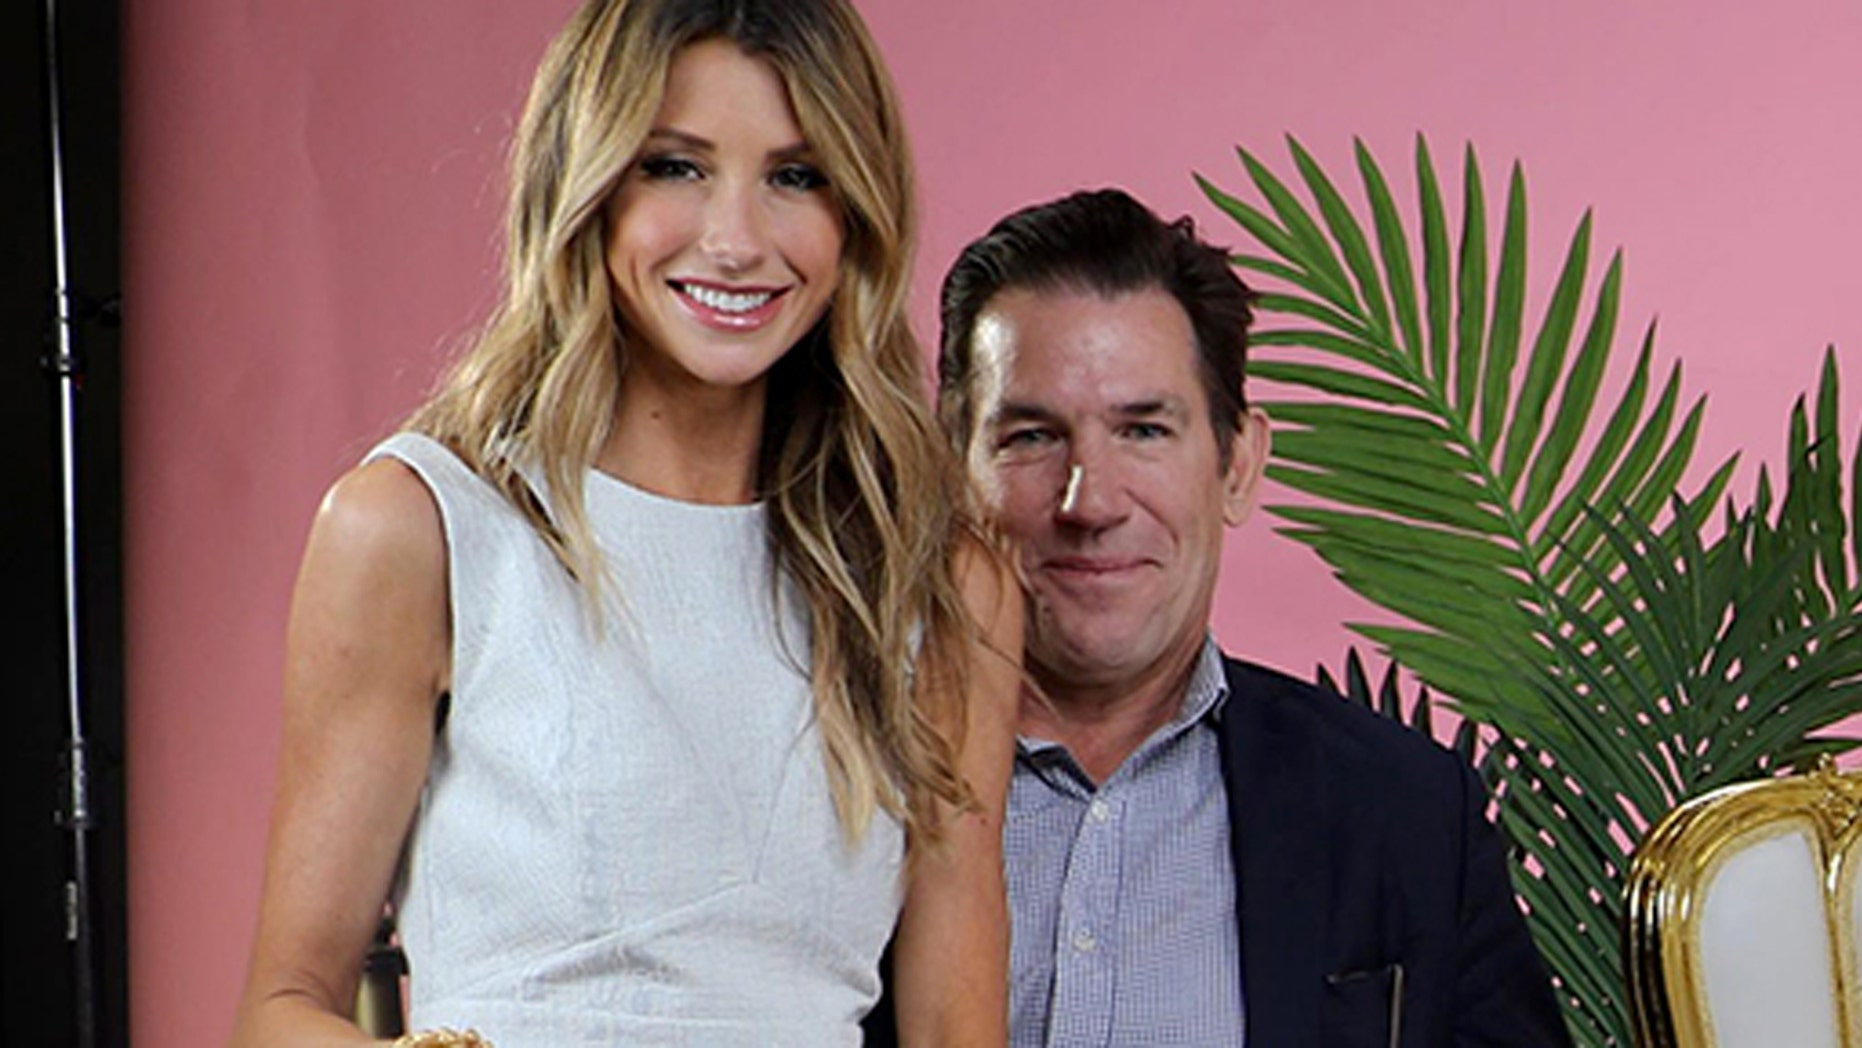 who is thomas from southern charm dating now dating group on whatsapp in nigeria